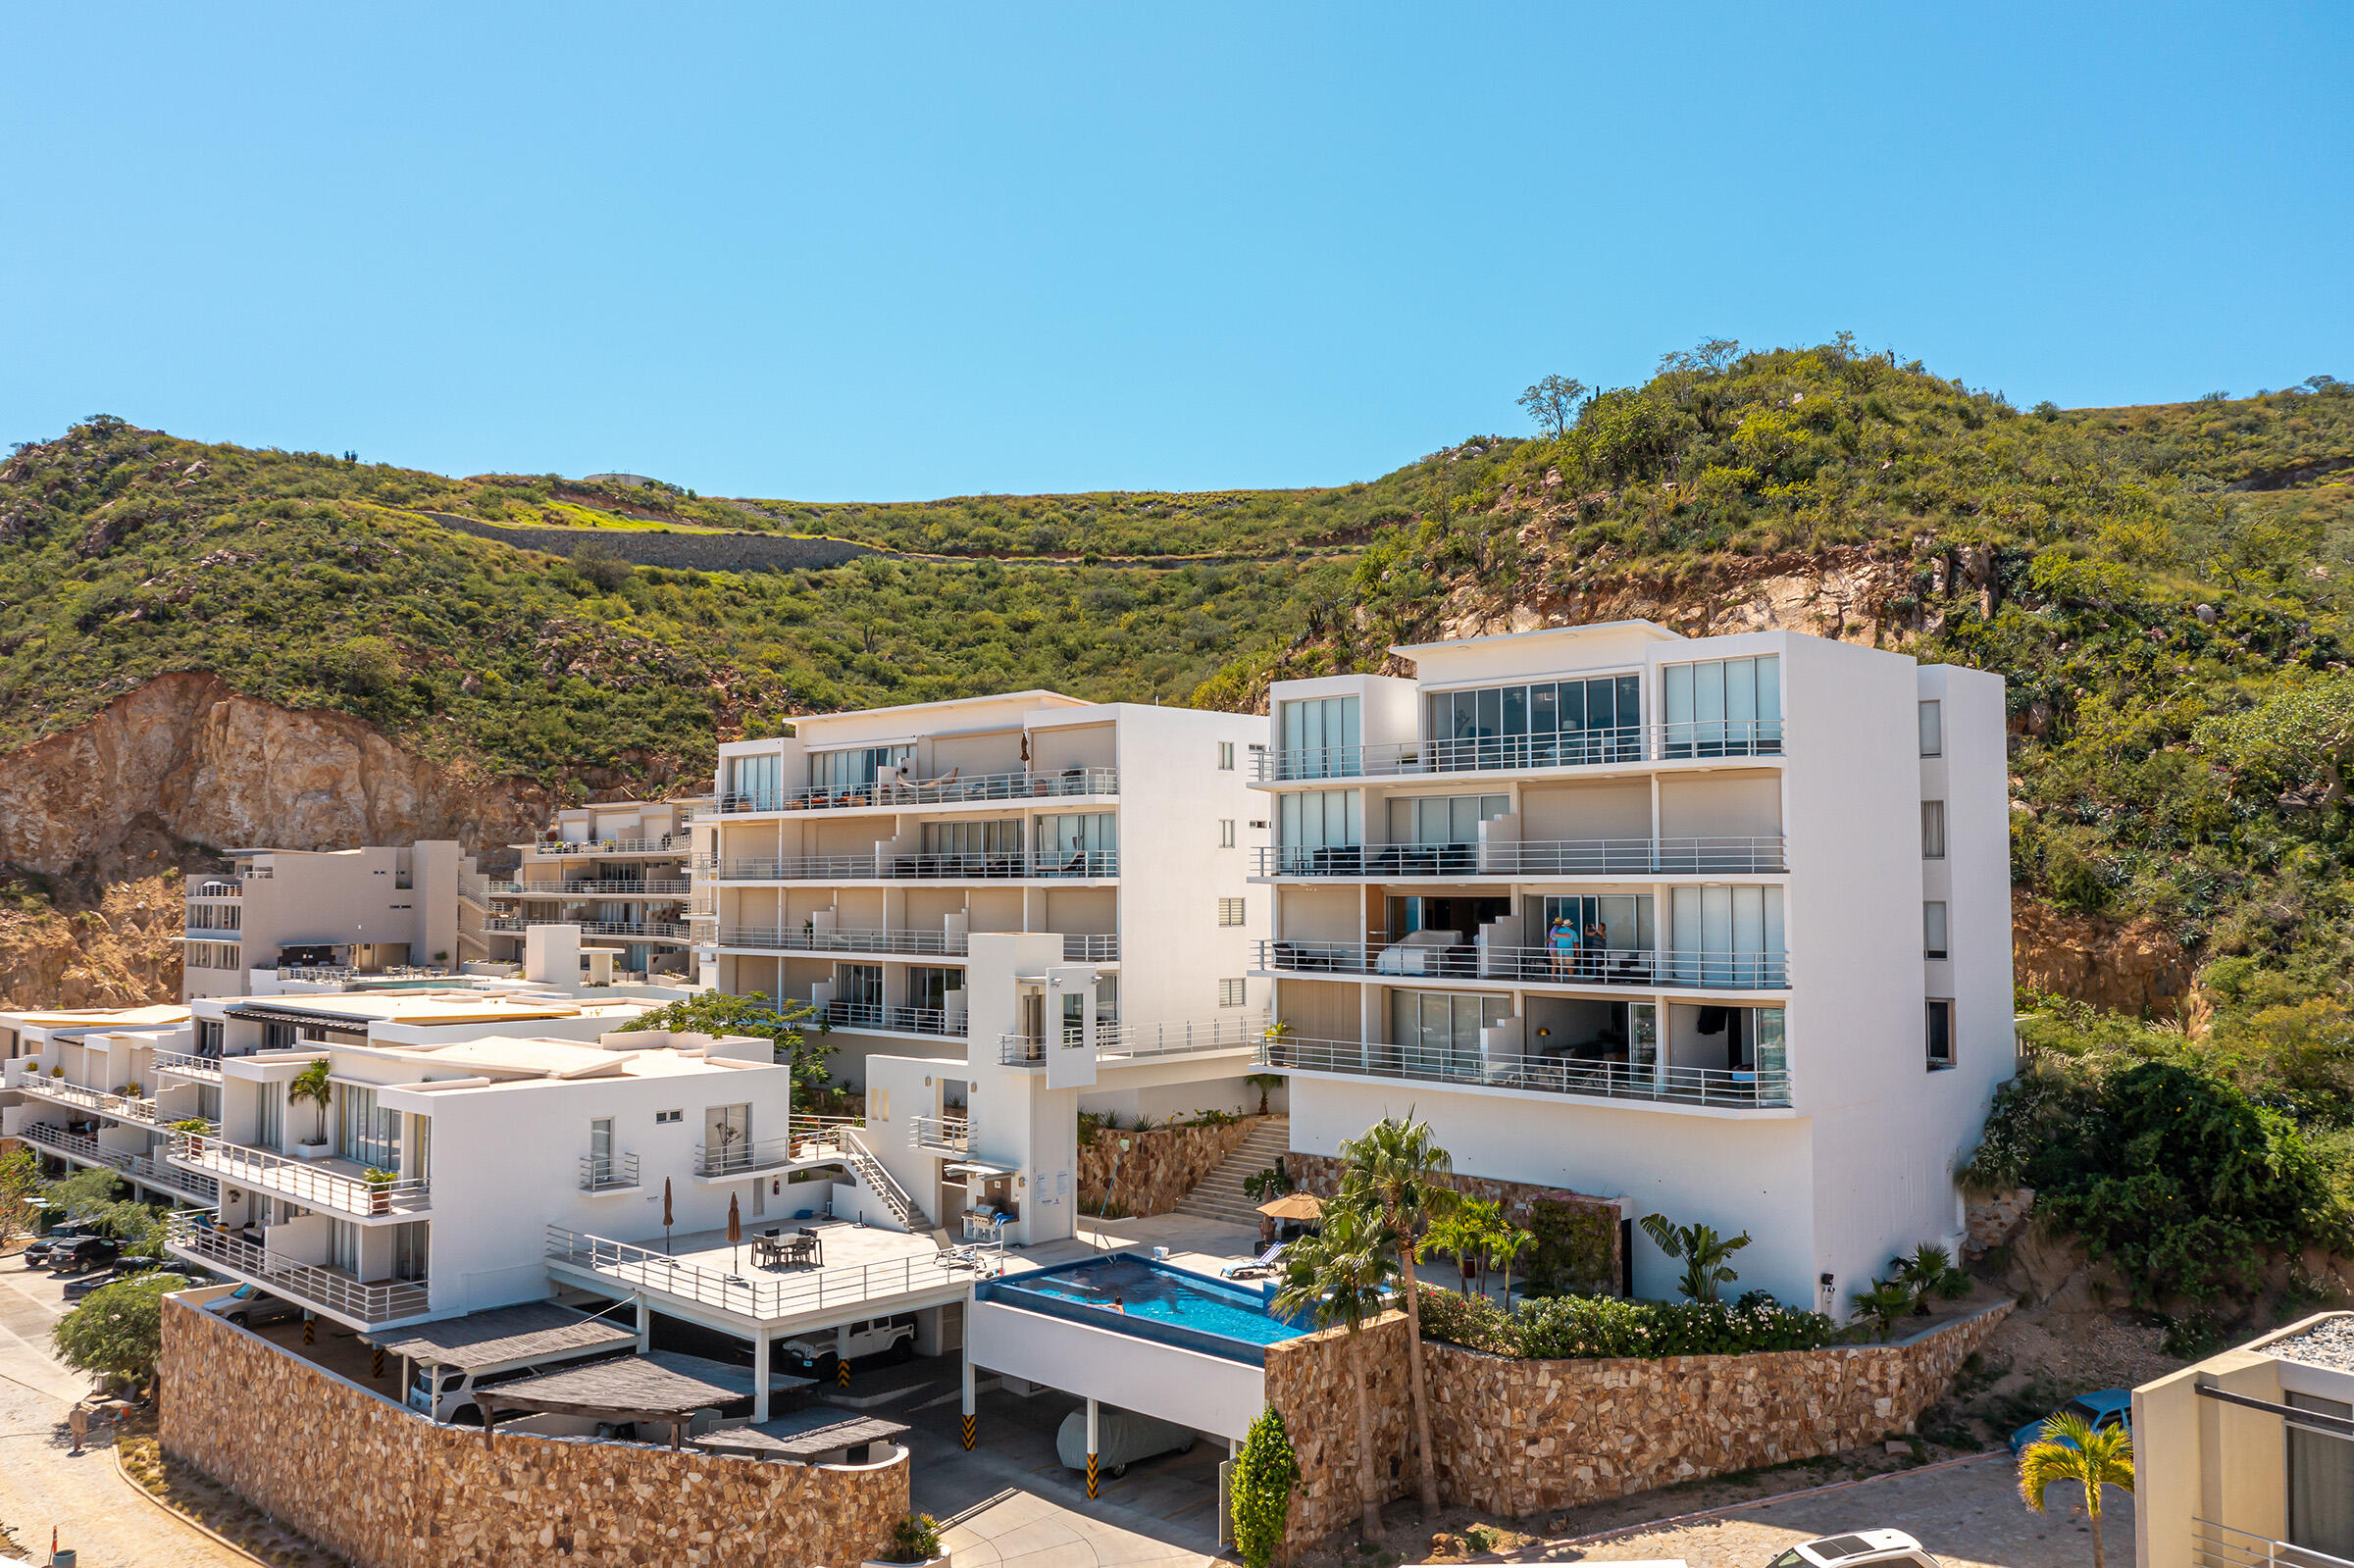 """Feel like you are living on top of the world in this newly remodeled two bedroom/bathroom condo featuring a stunning view of the Cabo marina and Sea of Cortez. The terrace is perfect for watching sunrise while sipping your morning coffee and catching an occasional whale swim by. The master bedroom has an impressive ocean view, ideal for waking up with the sun. Electric hurricane/sun blinds can easily be lowered for those lazy mornings. The second bedroom is currently being used as an office but can easily be converted back to a bedroom. The open floor plan with floor to ceiling windows create a bright and inviting living space perfectly coordinated for the easy living Cabo lifestyle. Cascadas offers 2 pool areas with BBQ's, Jacuzzi's, sun decks, and a Club House with full gym. Fully covered titled carport.  Full access to Pedregal amenities which included a secluded beach, spa, tennis courts, pickle ball, organic market, children's parks, and nearby hiking.  List of upgrades and additions:   New front door with peephole   New paint   New ceiling fans  Electronic Hurricane/sunscreens($13,000 value)   Water purification system  Smart doorbell, smart camera, smart smoke/carbon monoxide detector  New washing machine and dryer   Custom cabinets in laundry room   New light fixtures throughout the condo  All light switches and electrical outlet covers replaced  Living room and master bedroom windows resealed in May   New inverter mini-split AC, saving up to 70% of energy costs  73""""new TV and Sonos sound system in the living room   65""""new TV and Sonos sound system in the master bedroom   3 new Crate and Barrel rugs   Fiber optic (200 Mbps) Internet recently re-wired with brand new cabling and connection."""